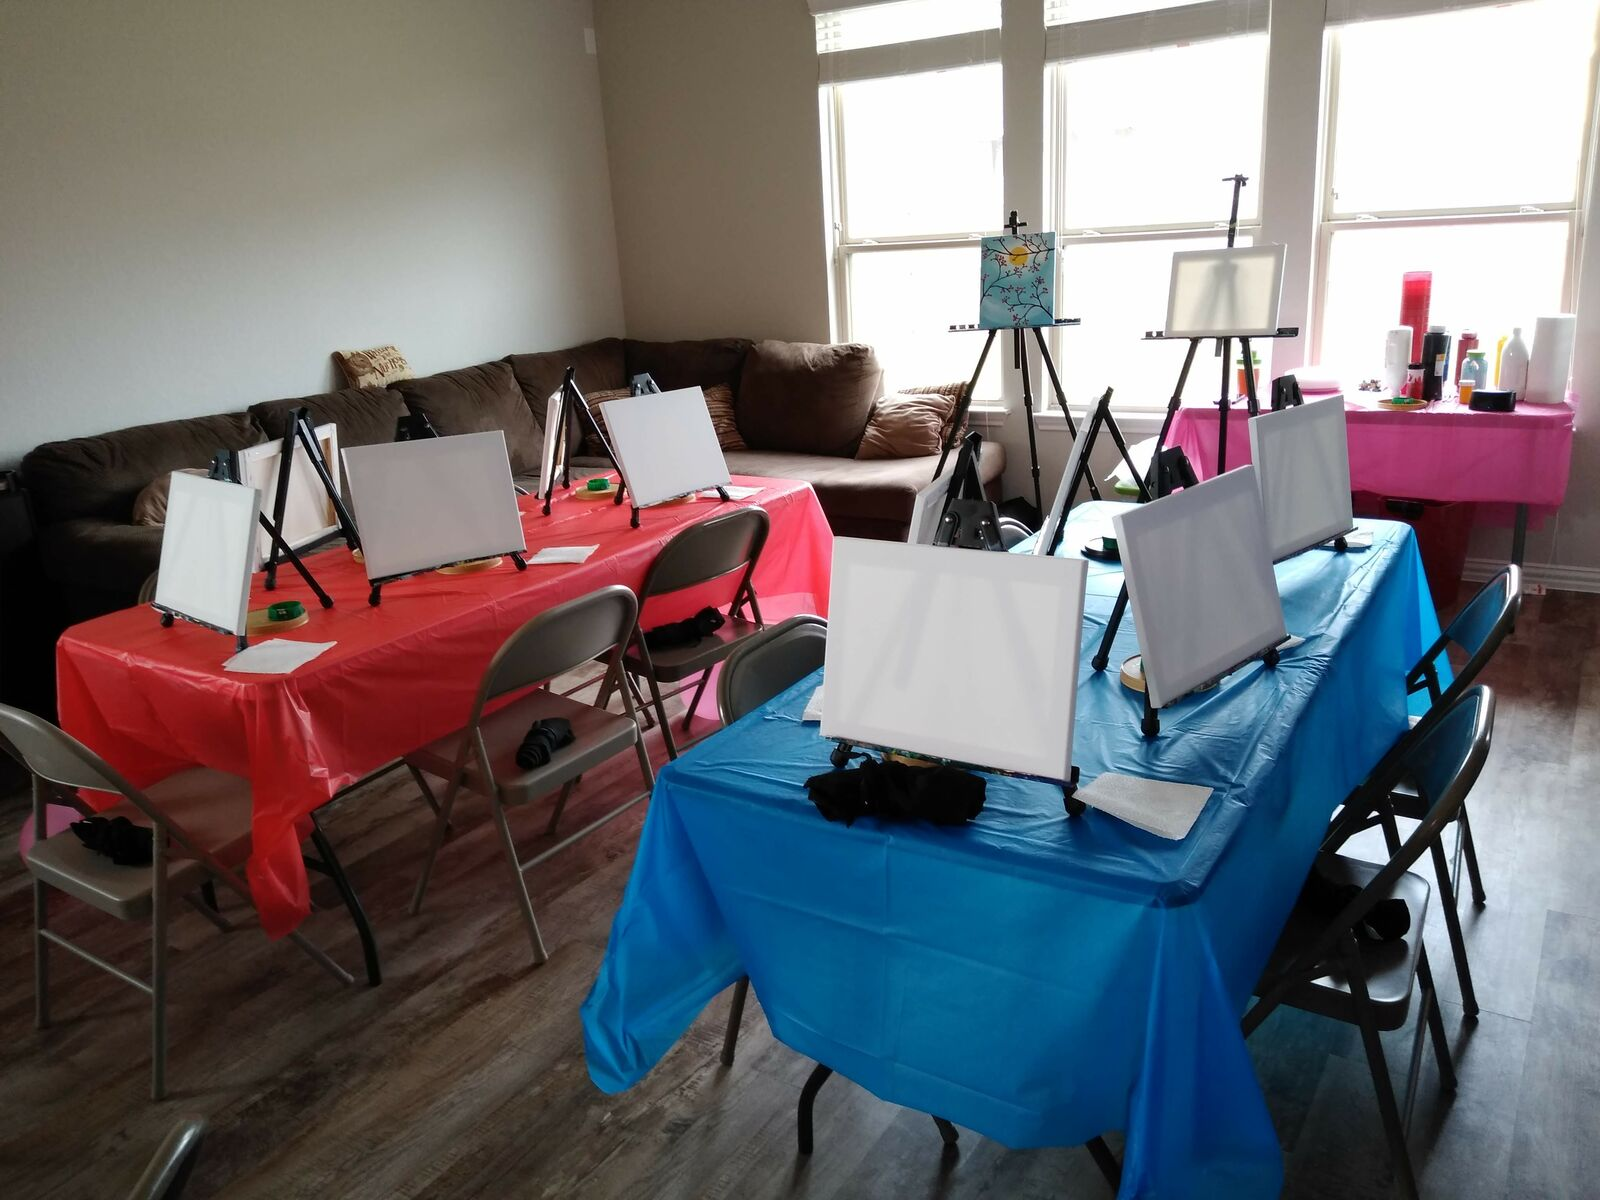 Here is what a typical In Home Small Kid's Paint Party setup looks like!